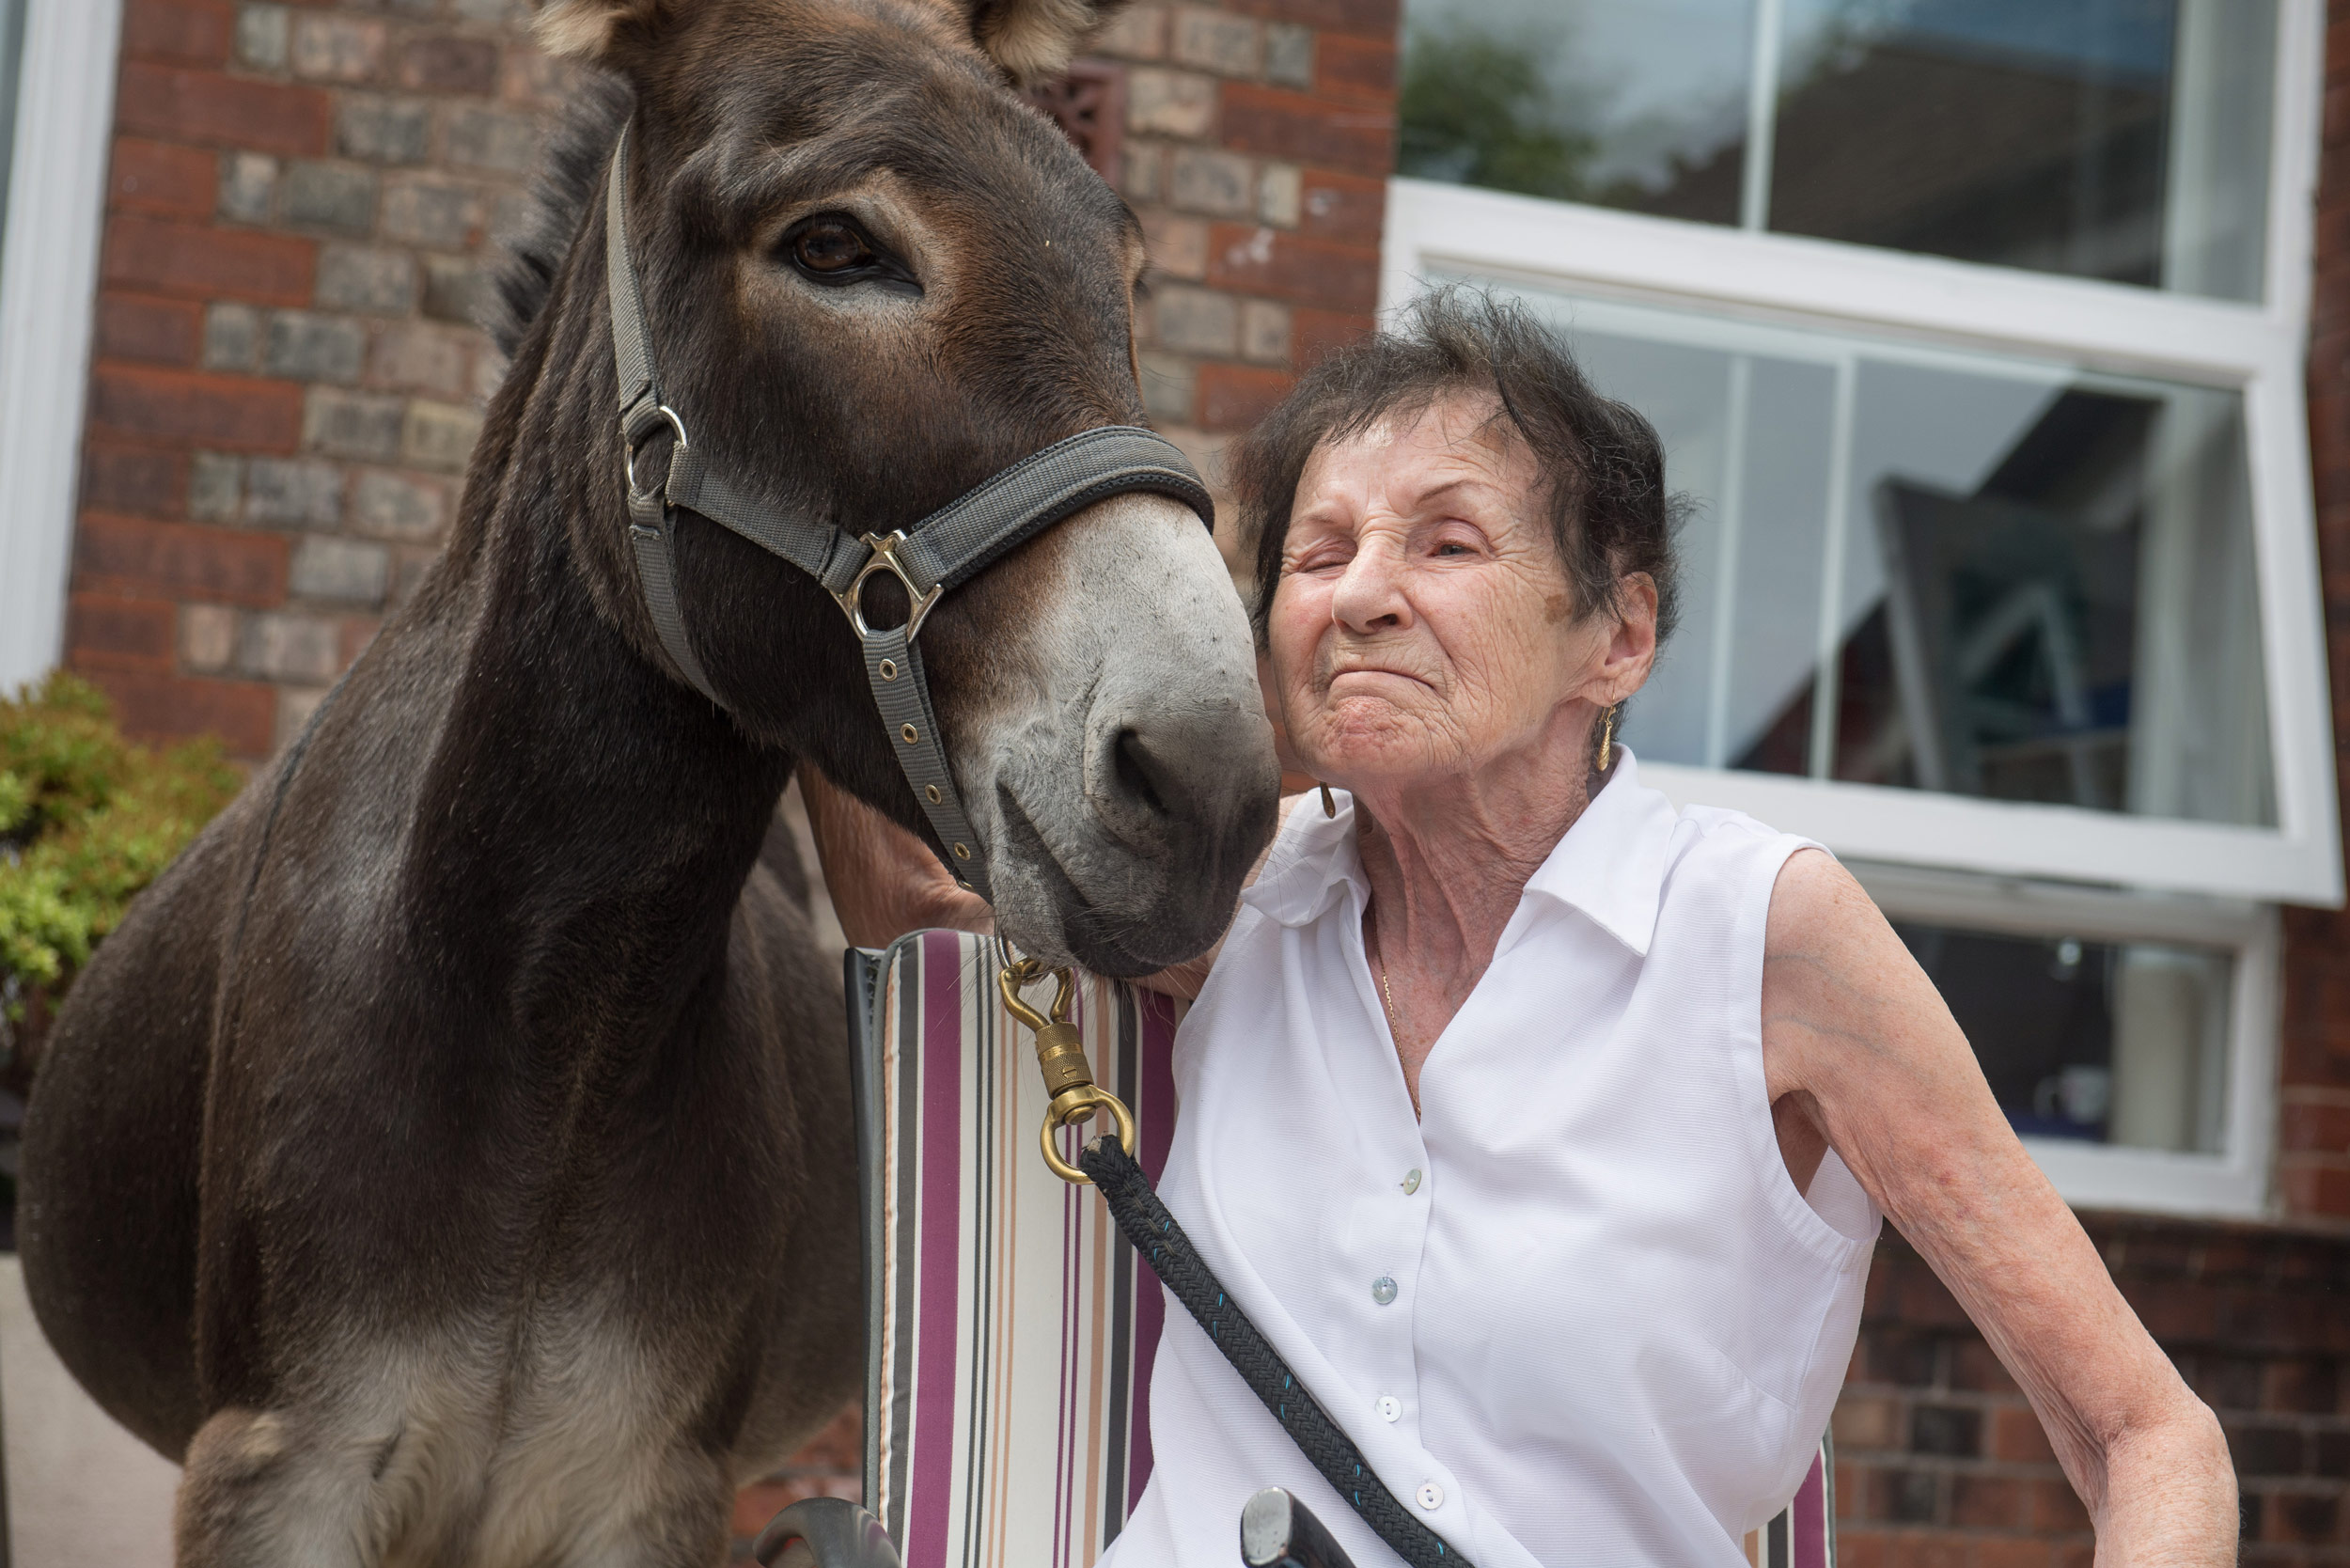 A therapy donkey visits patients at a hospice